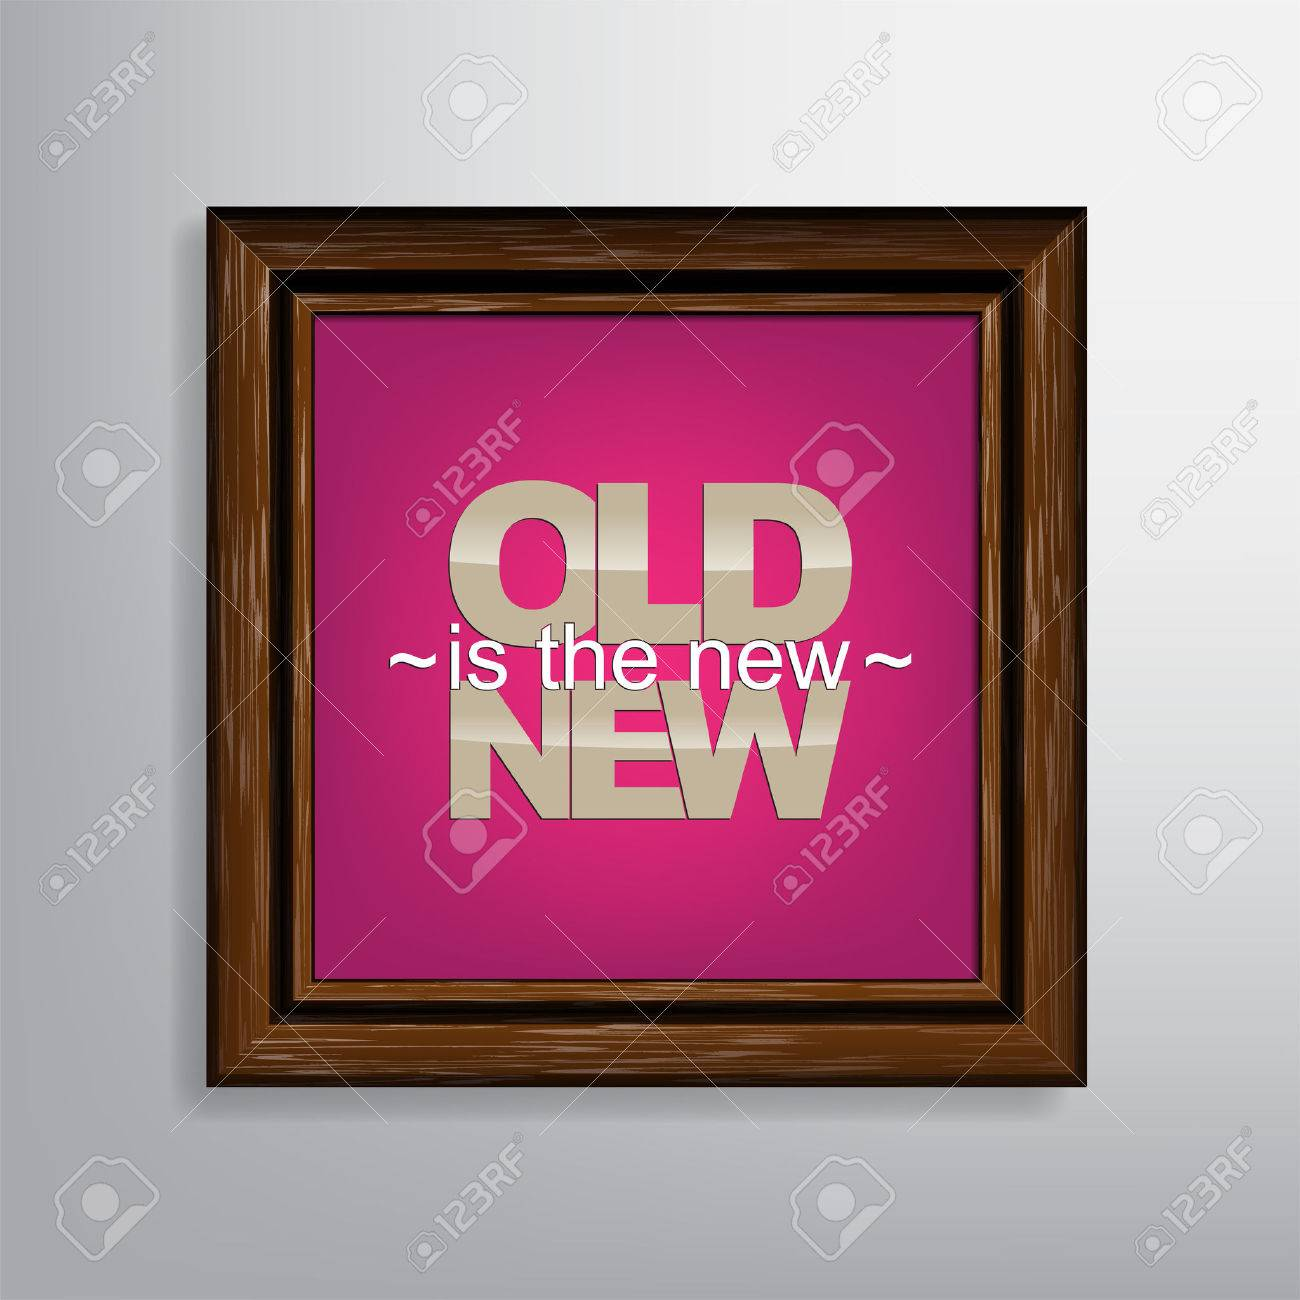 Old is the new NEW. Motivational canvas background Stock Vector - 22638514